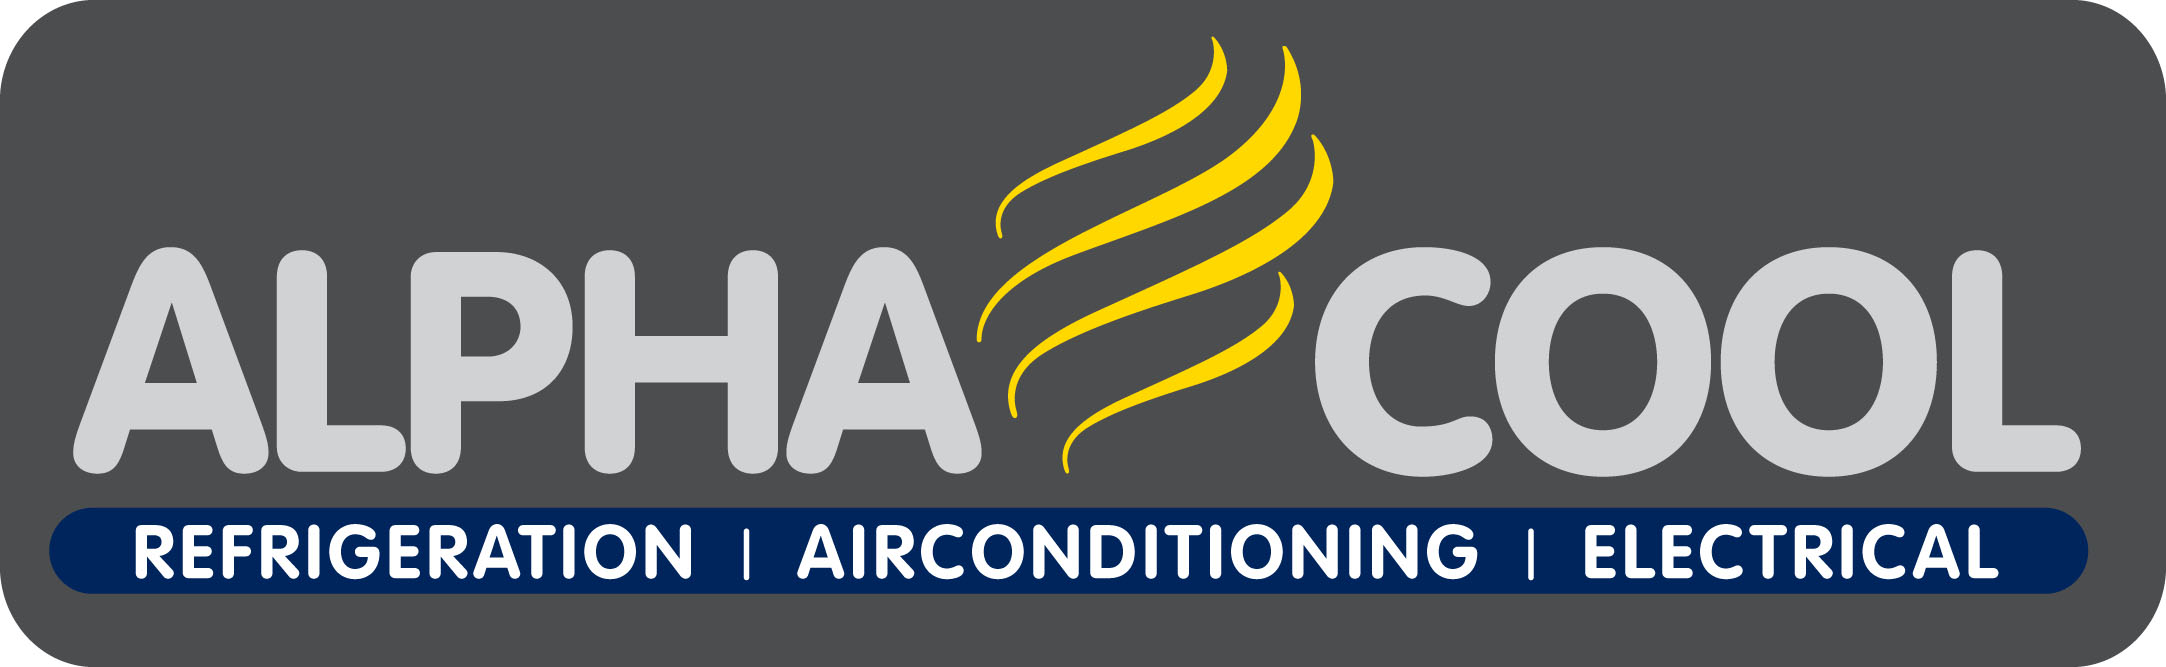 AC_Logo1 Normal.jpg